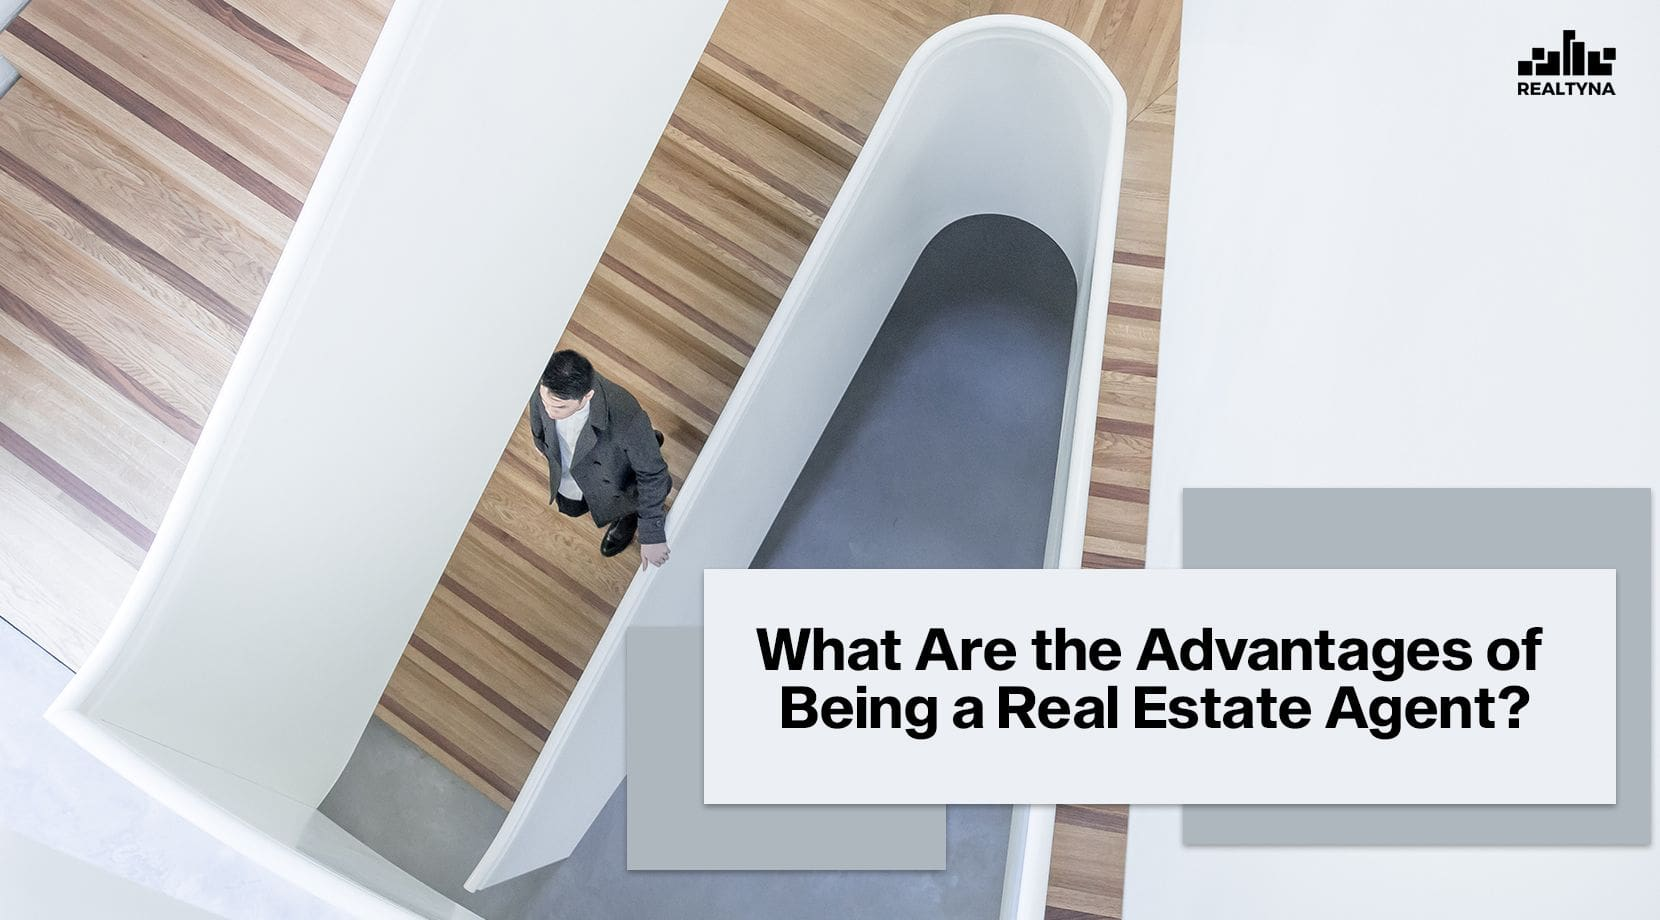 What Are the Advantages of Being a Real Estate Agent?